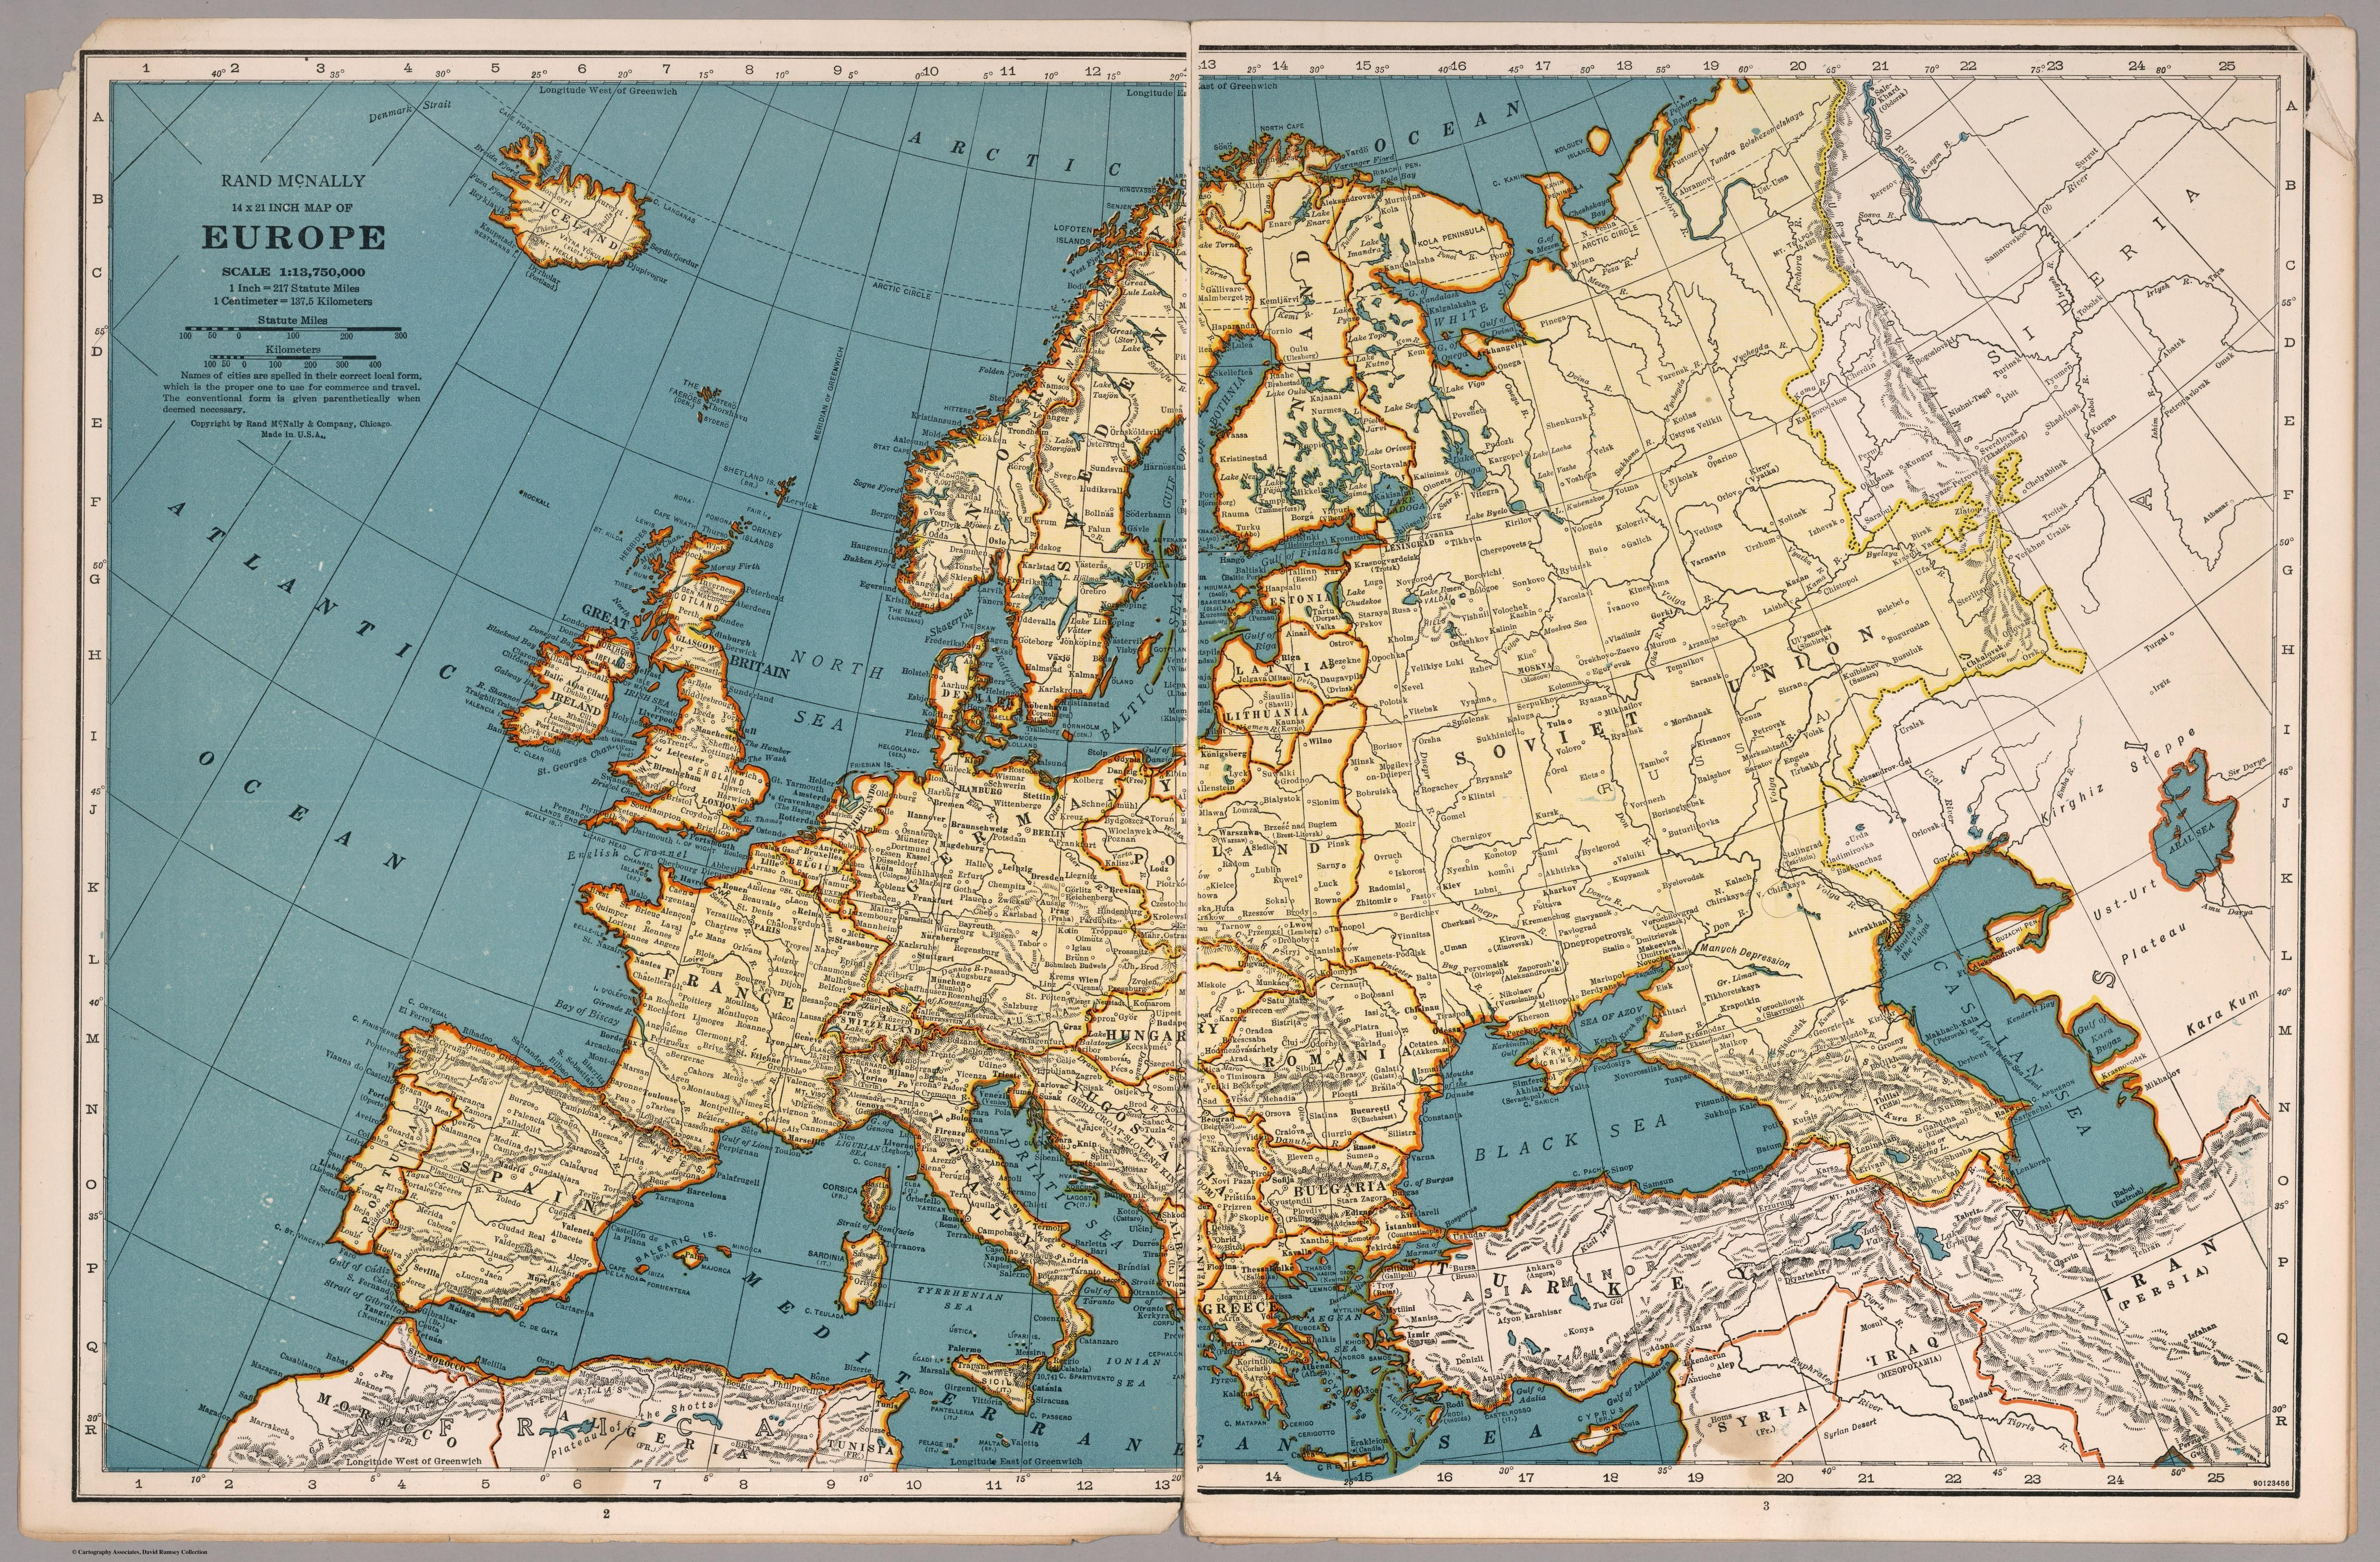 Aesthetically pleasing Map of Europe made by Rand McNally in 1939 ...